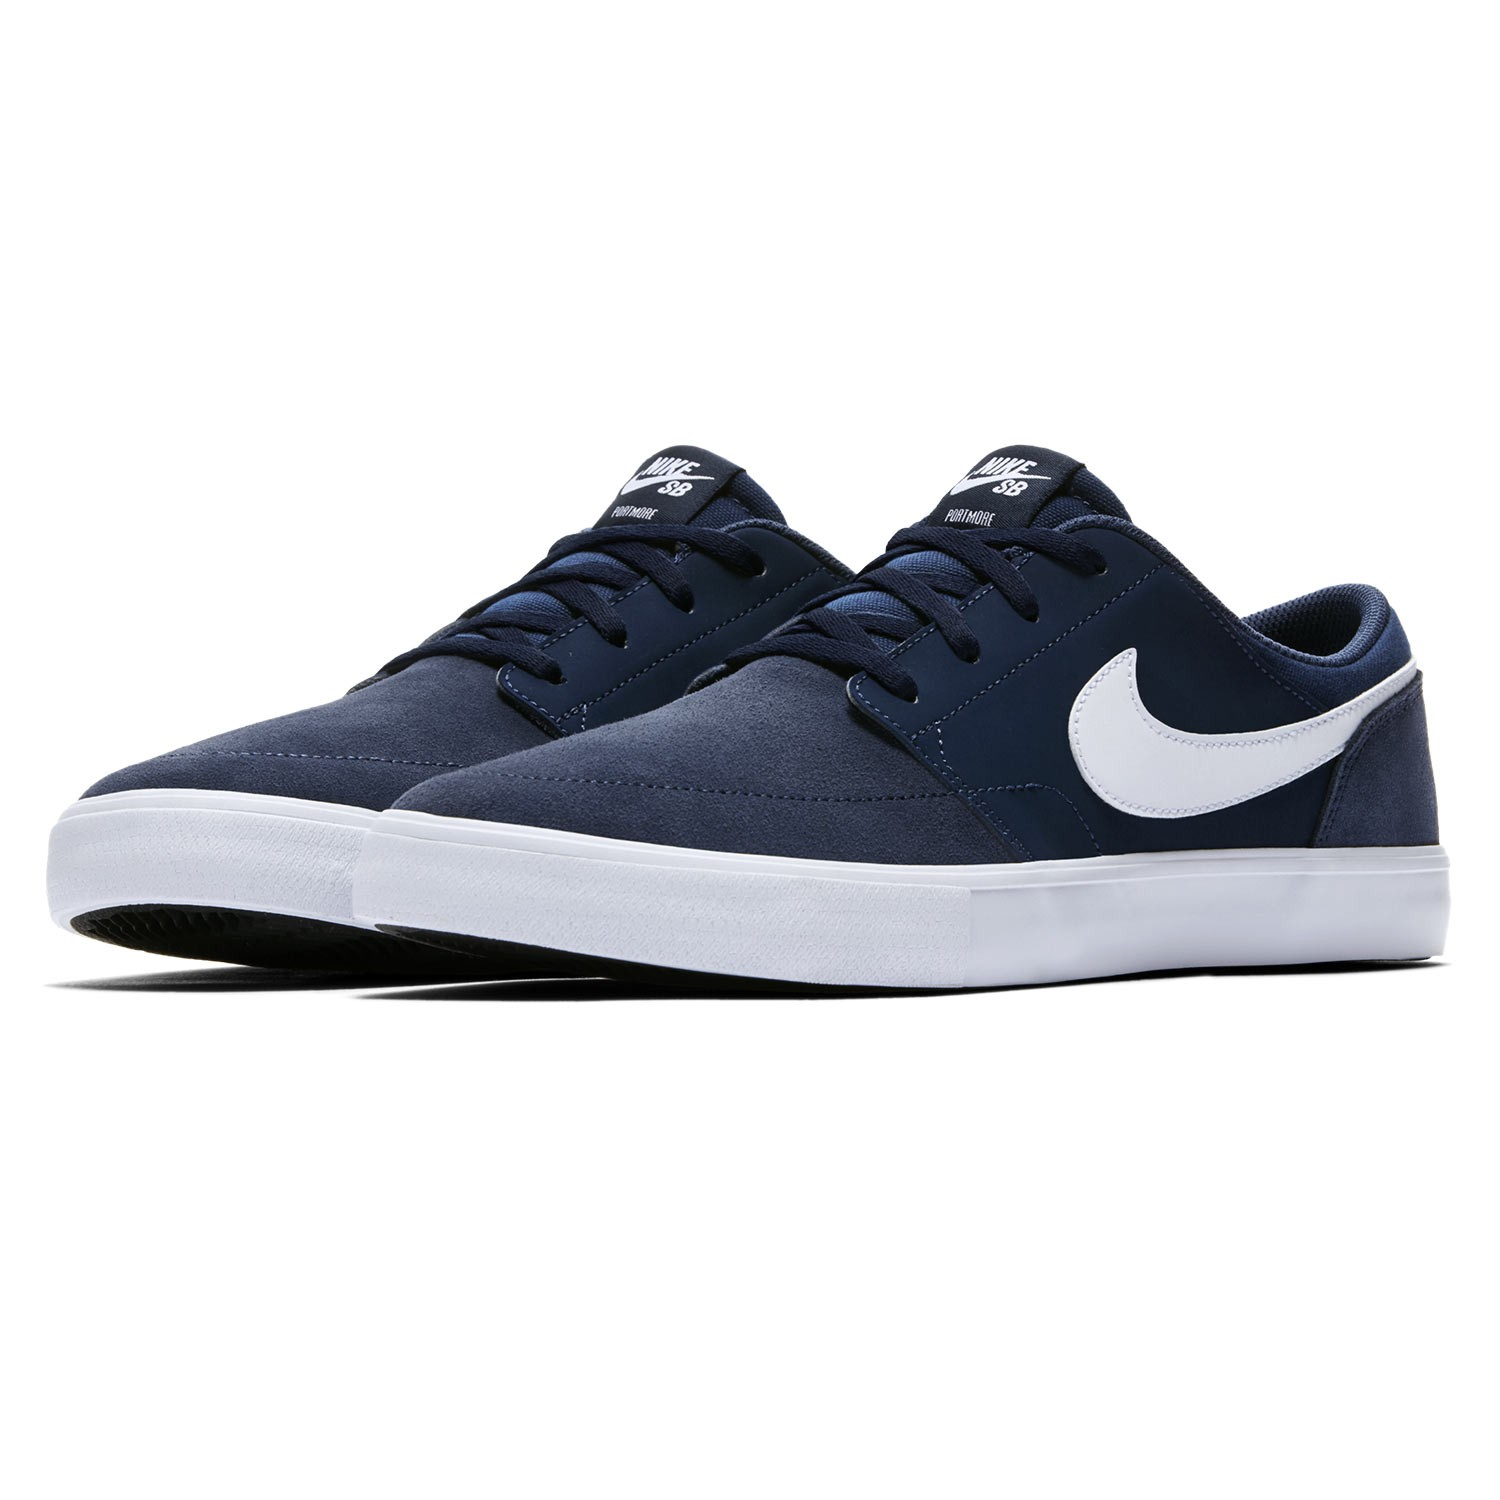 sneakers nike sb solarsoft portmore ii midnight navy white black snowboard zezula